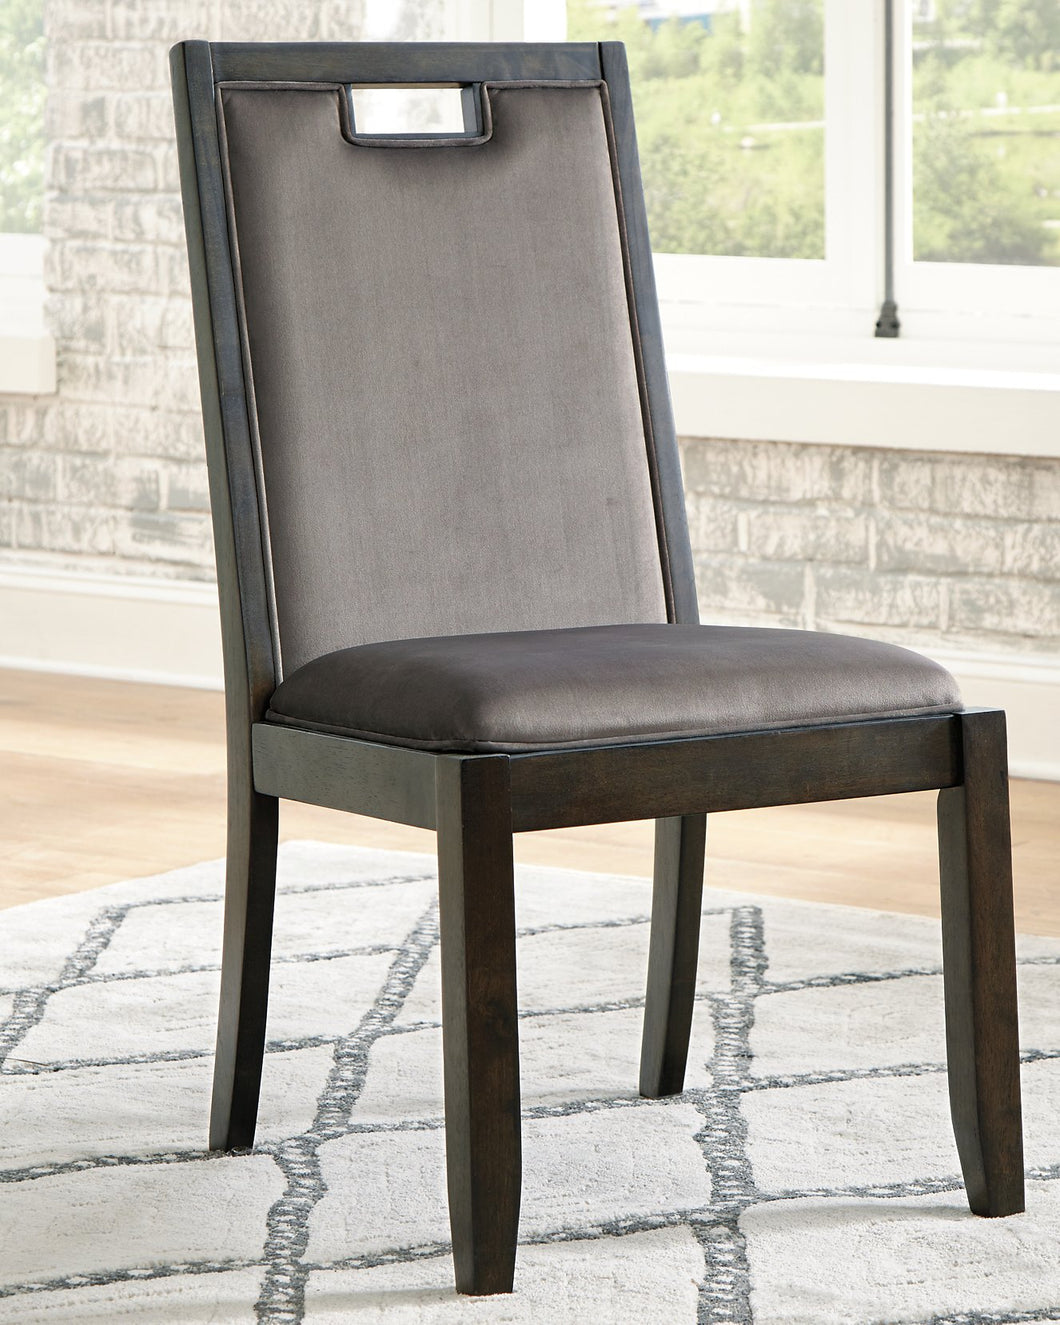 Hyndell Signature Design by Ashley Dining Chair image